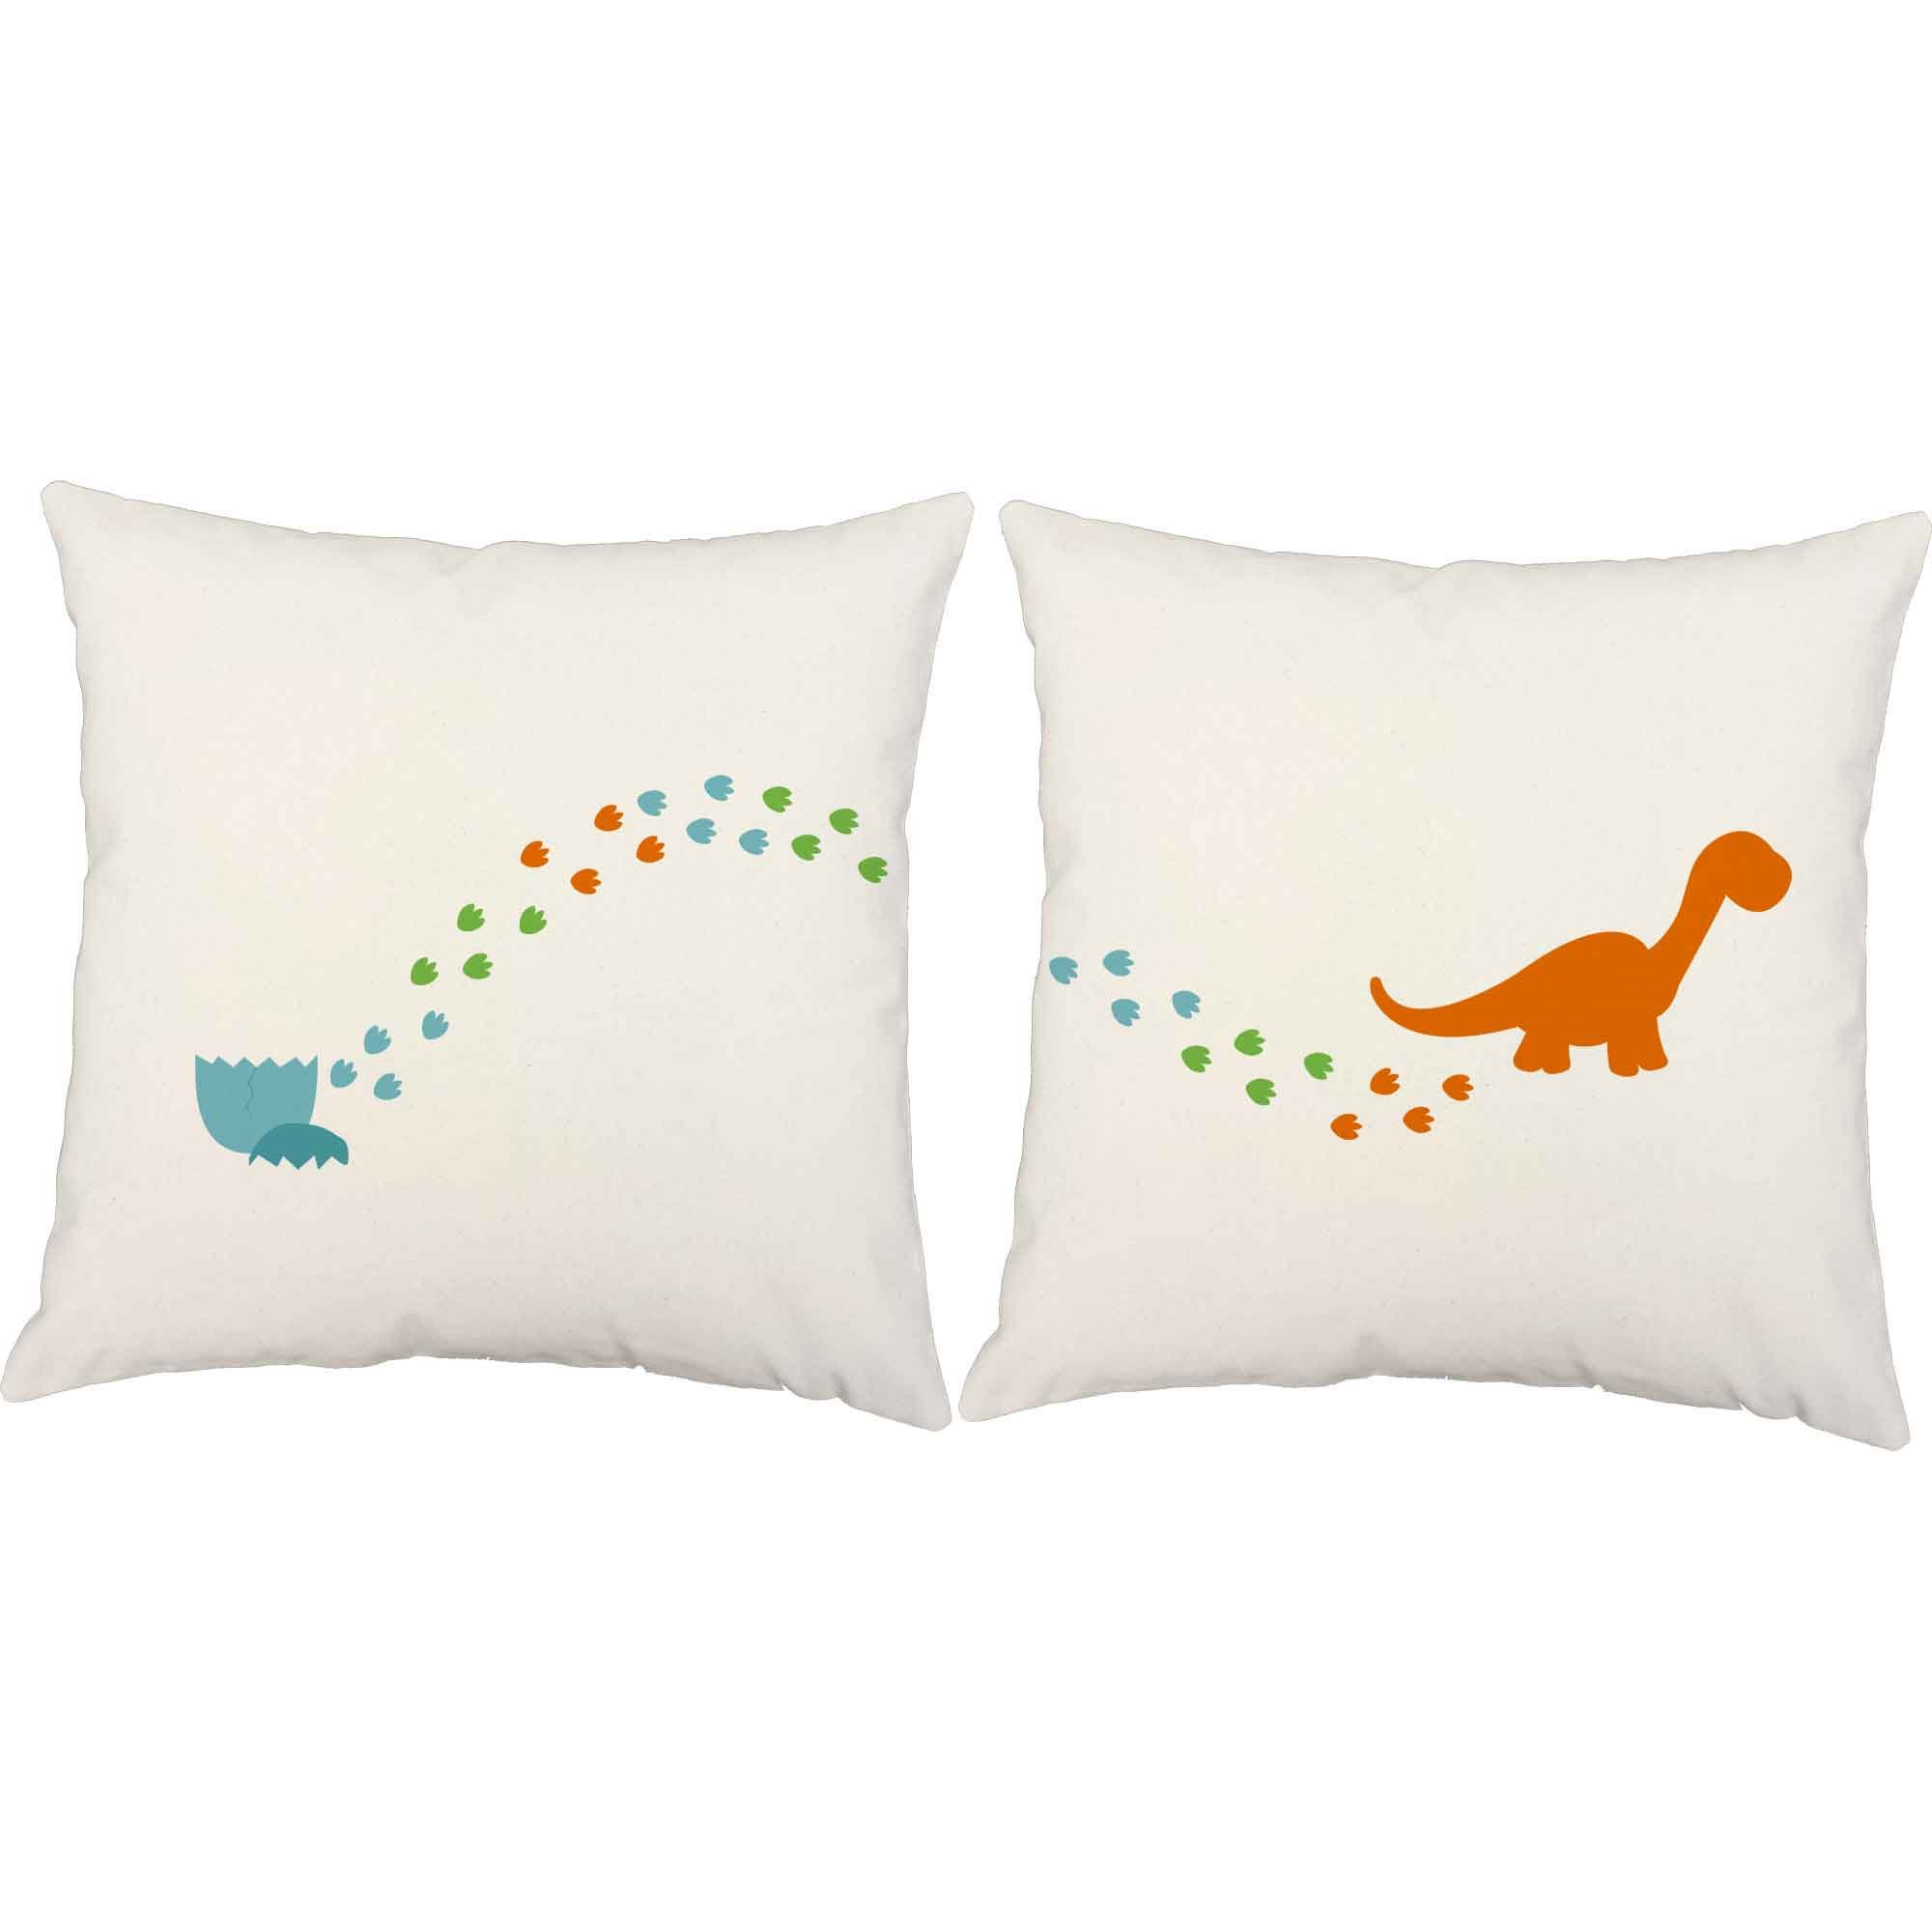 Set of 2 RoomCraft Dinosaur Hatchling Throw Pillows 20x20 Inch Square White Outdoor Dino Tracks Cushions